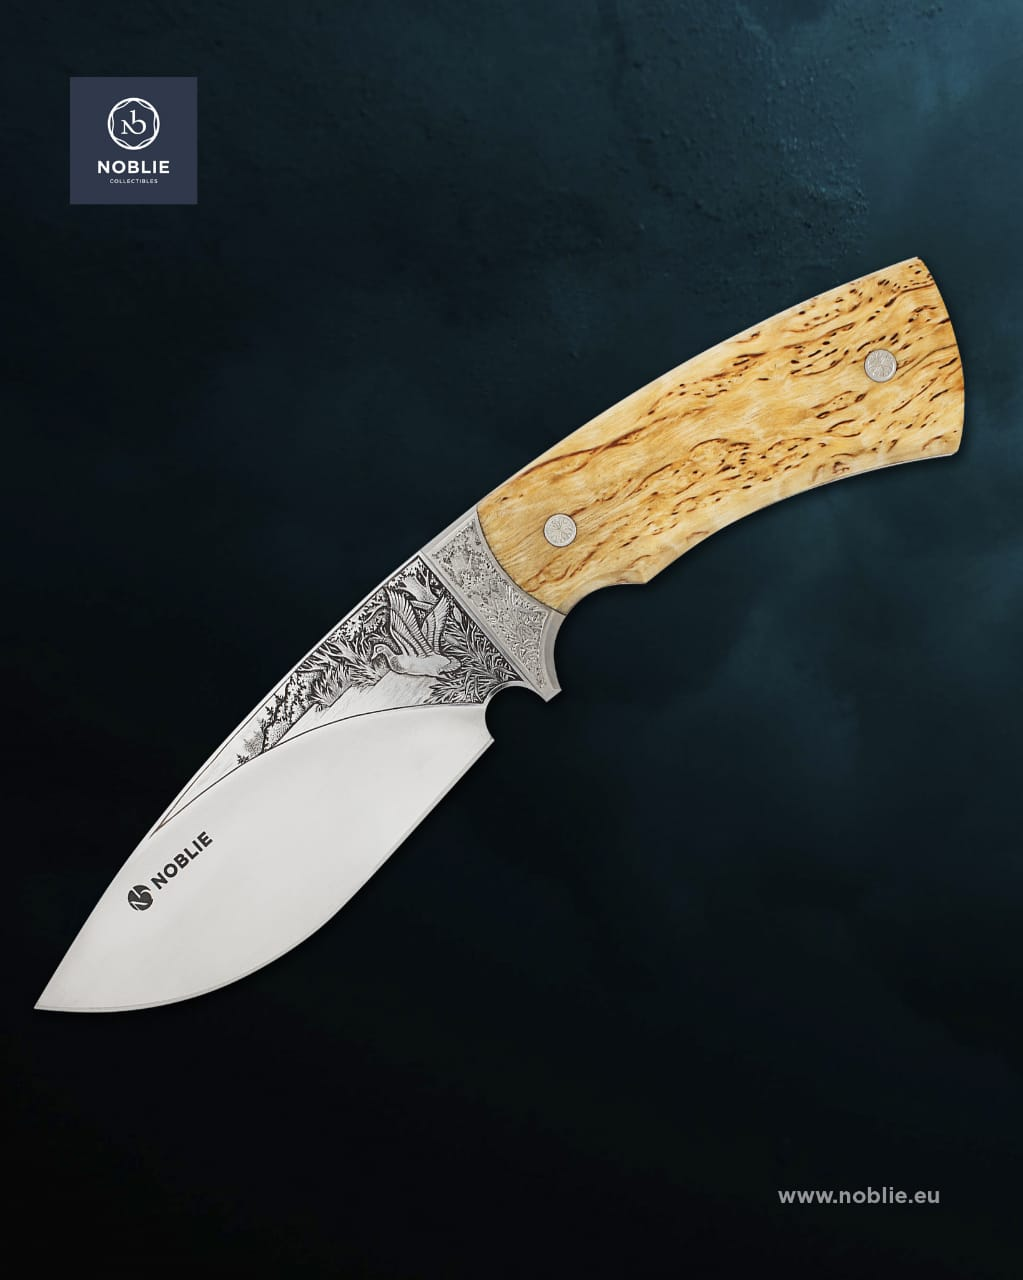 Handmade hunting knives. What makes them different?